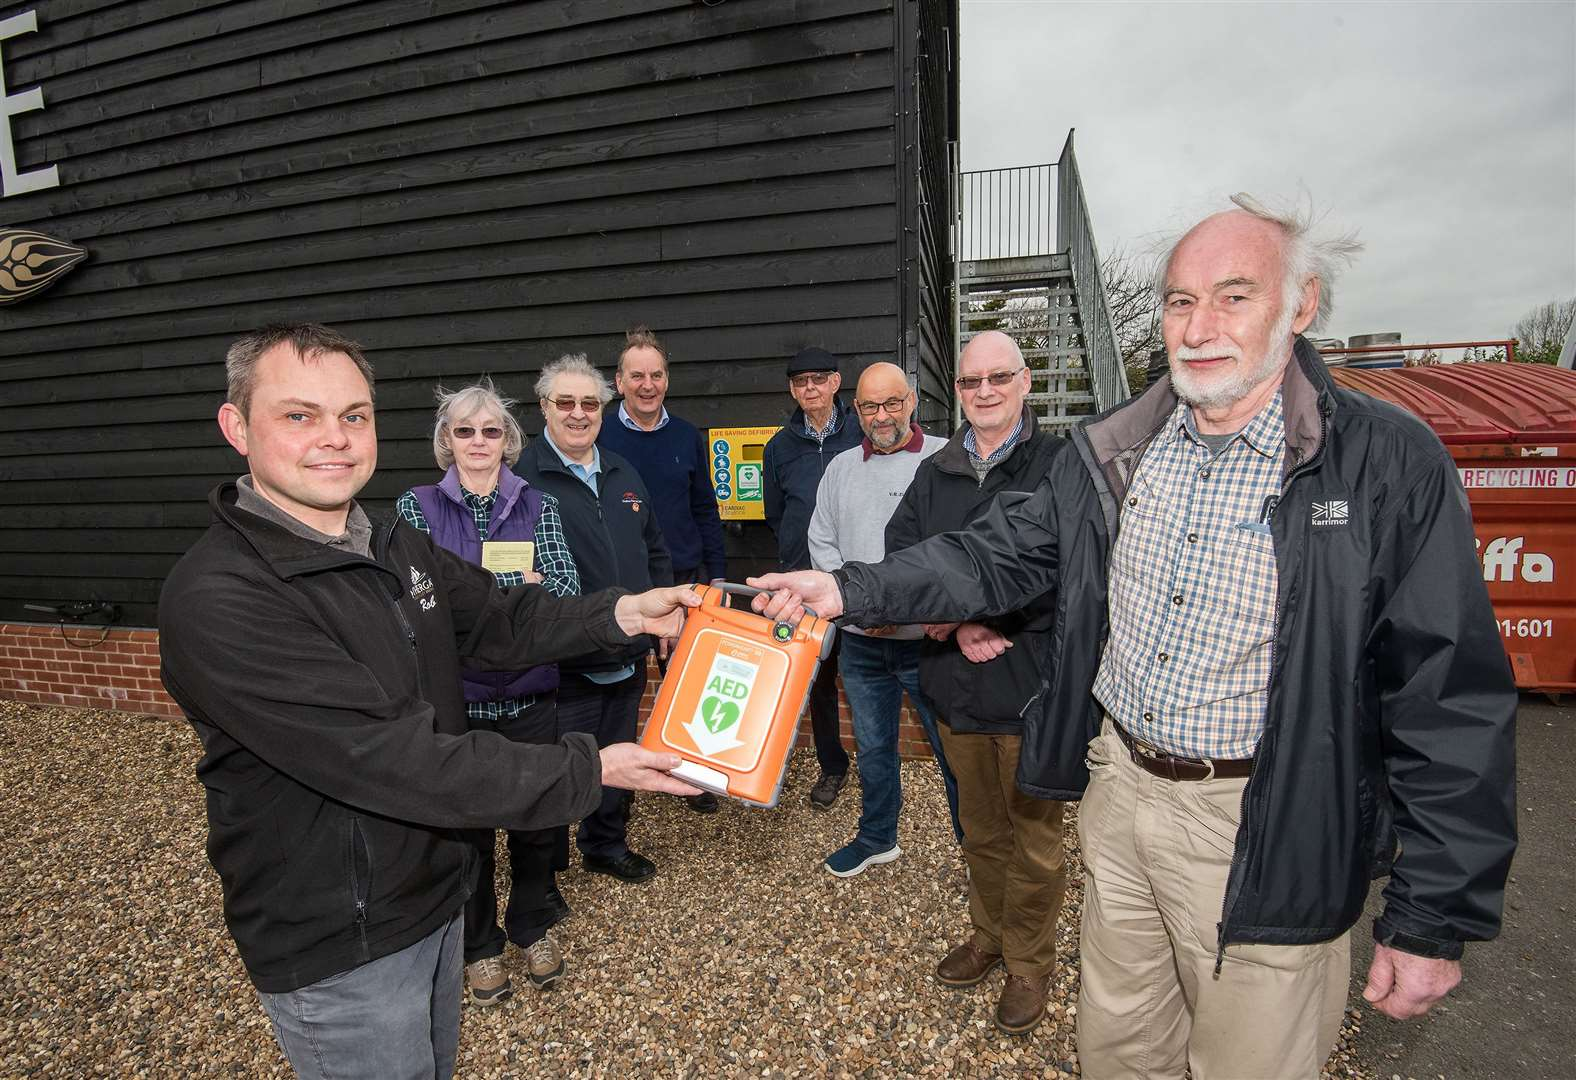 Nethergate Brewery installs life-saving equipment at its site in Long Melford